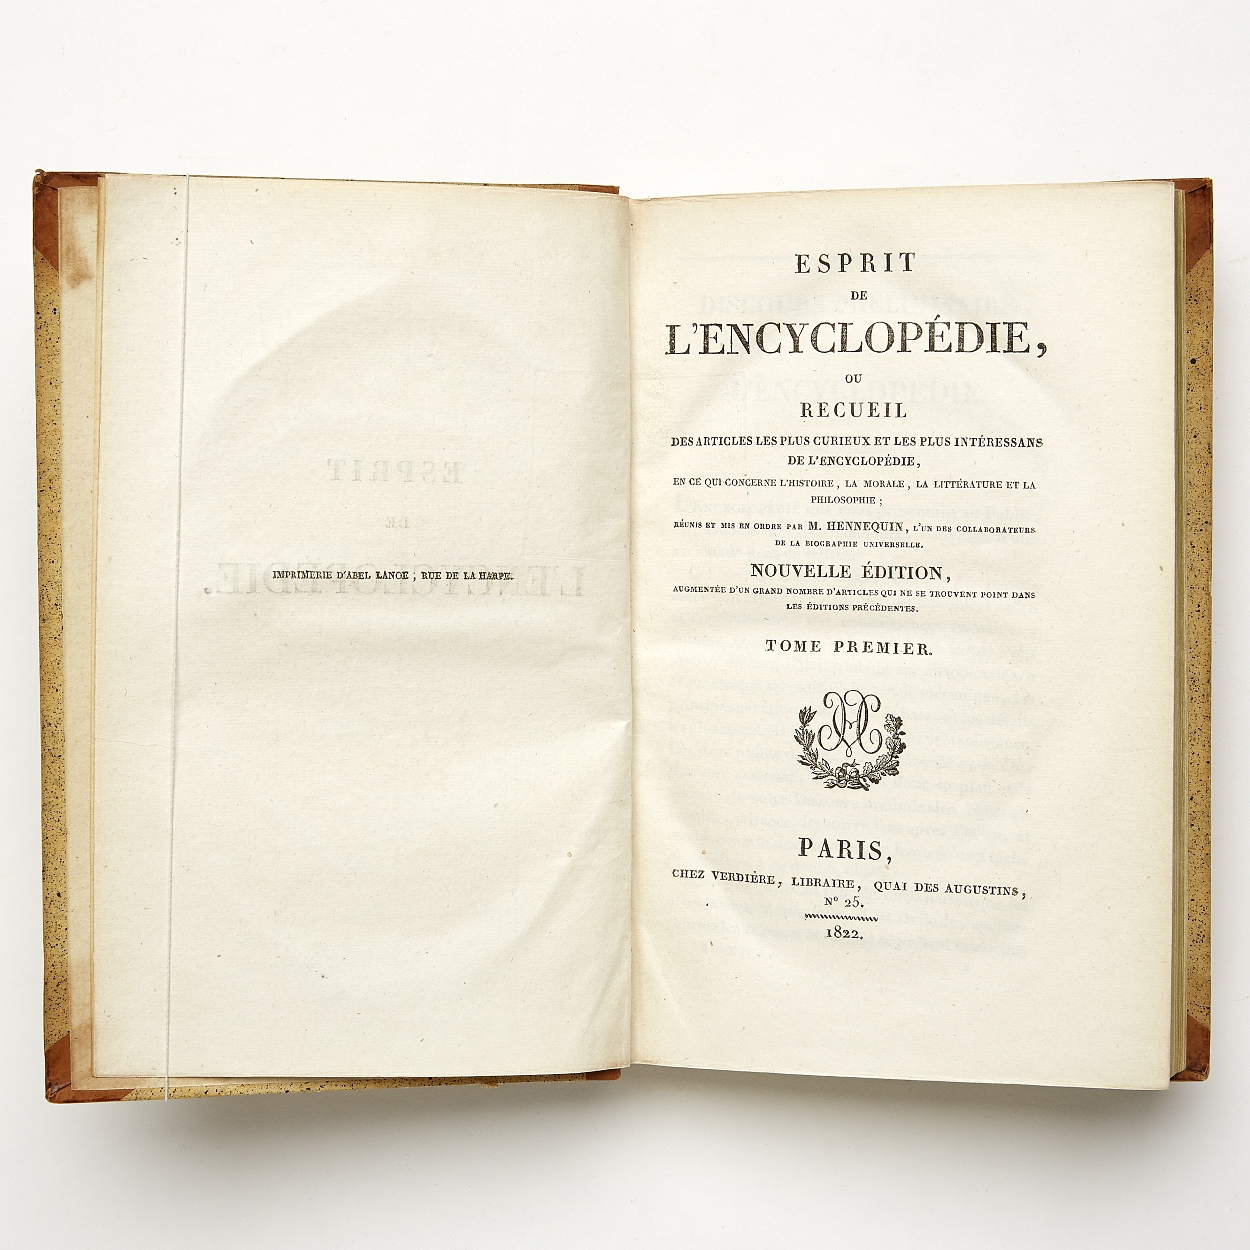 Esprit de l'encyclopédie 1822 in 15 volumes